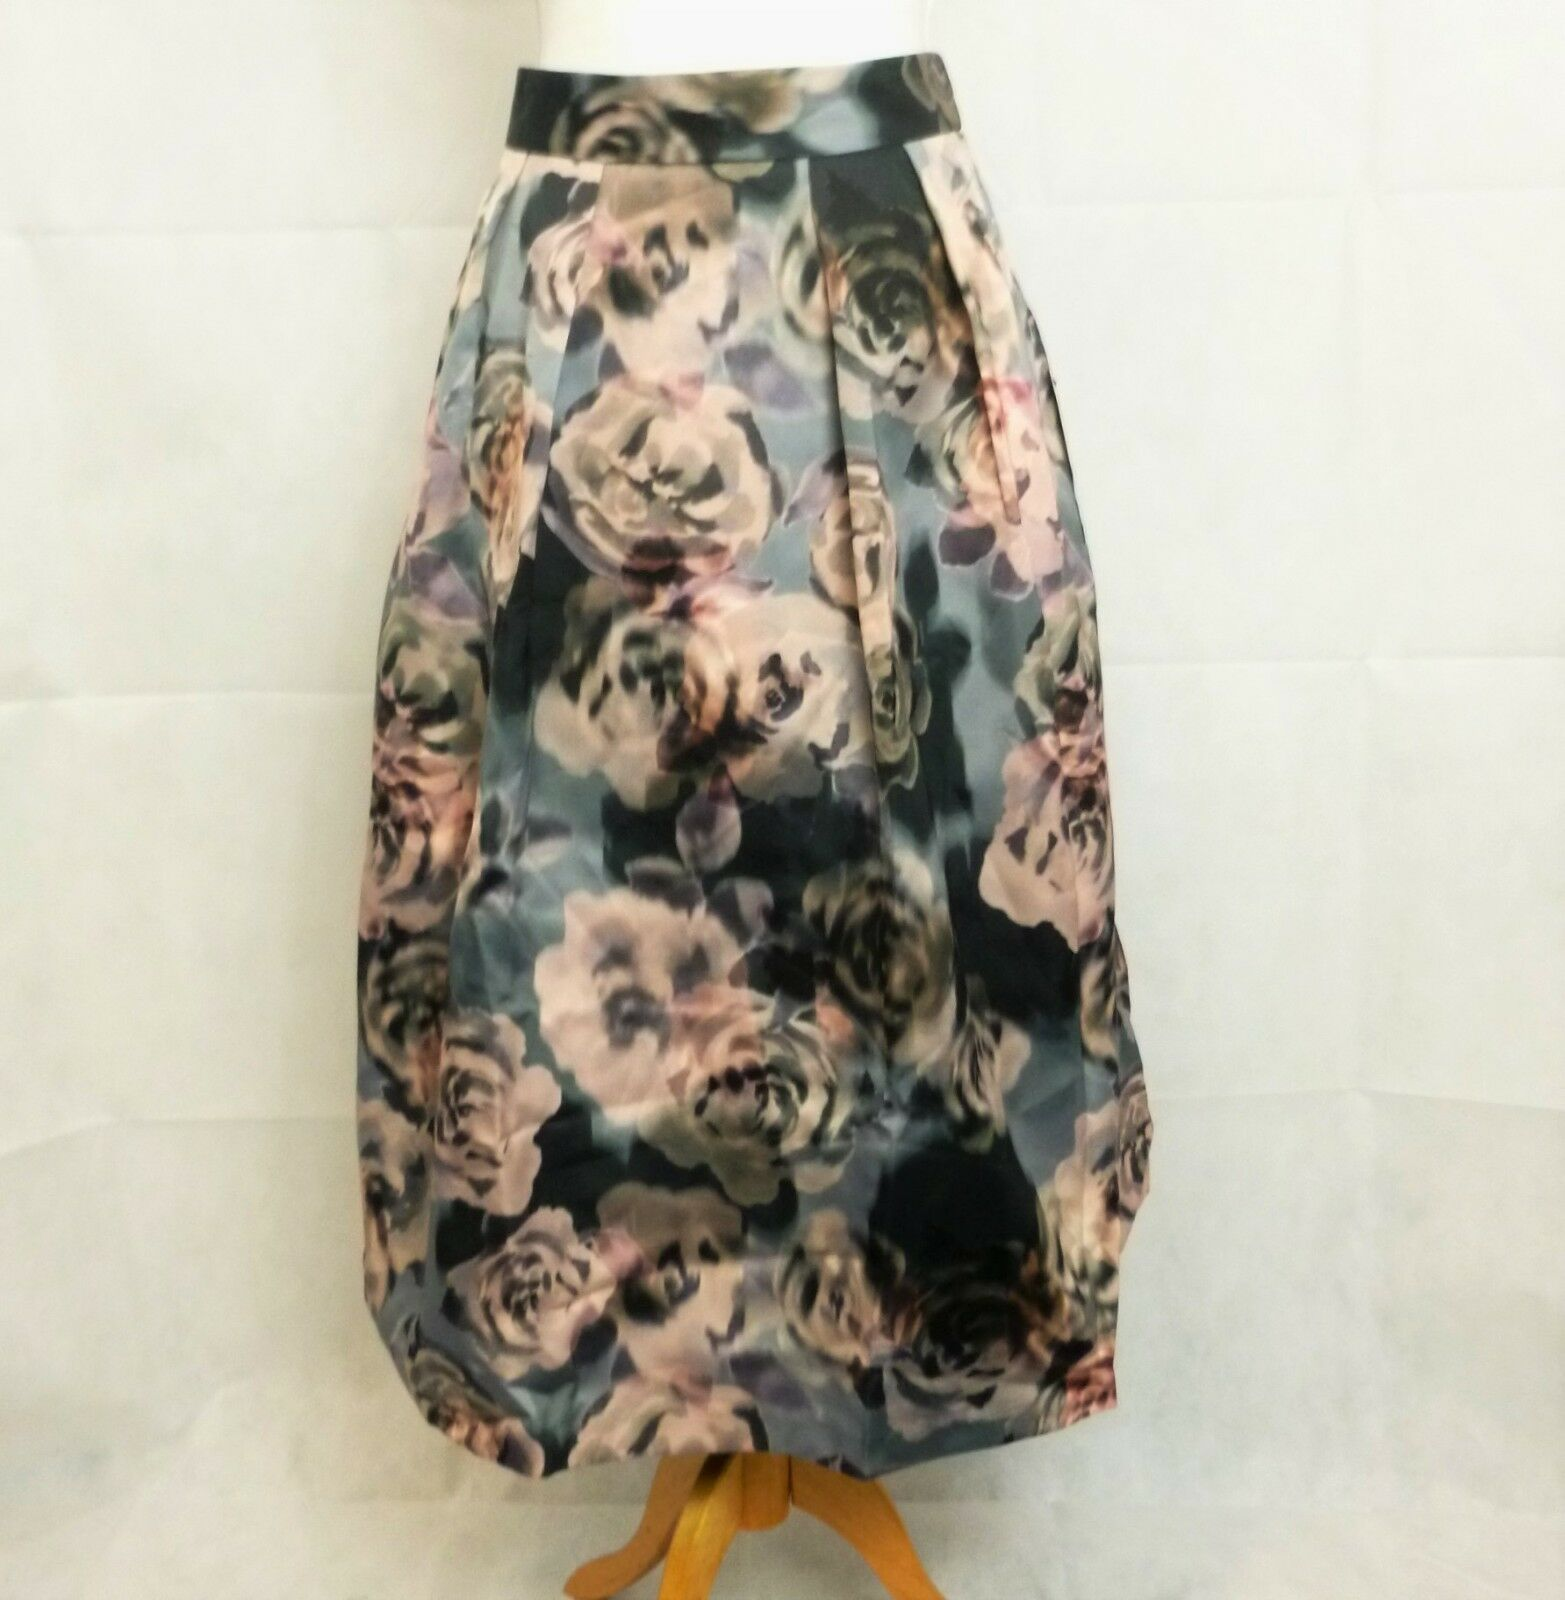 Next Delicate Nature Skirt rrp  Size 12 uk LS079 HH 03